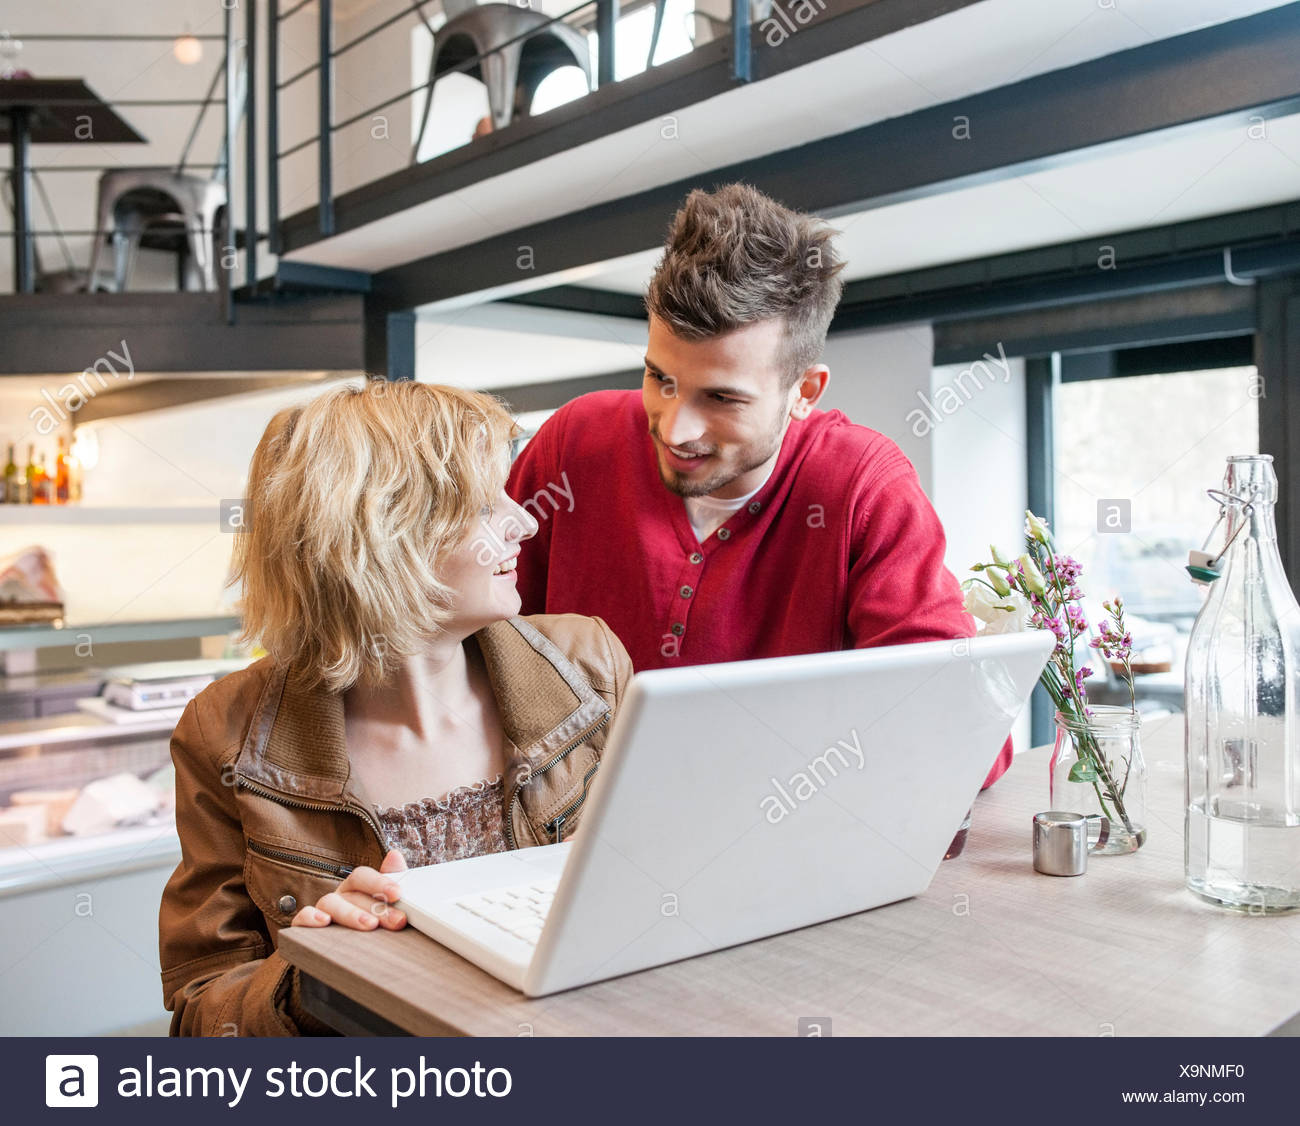 Young couple looking at each other while using laptop in cafe - Stock Image